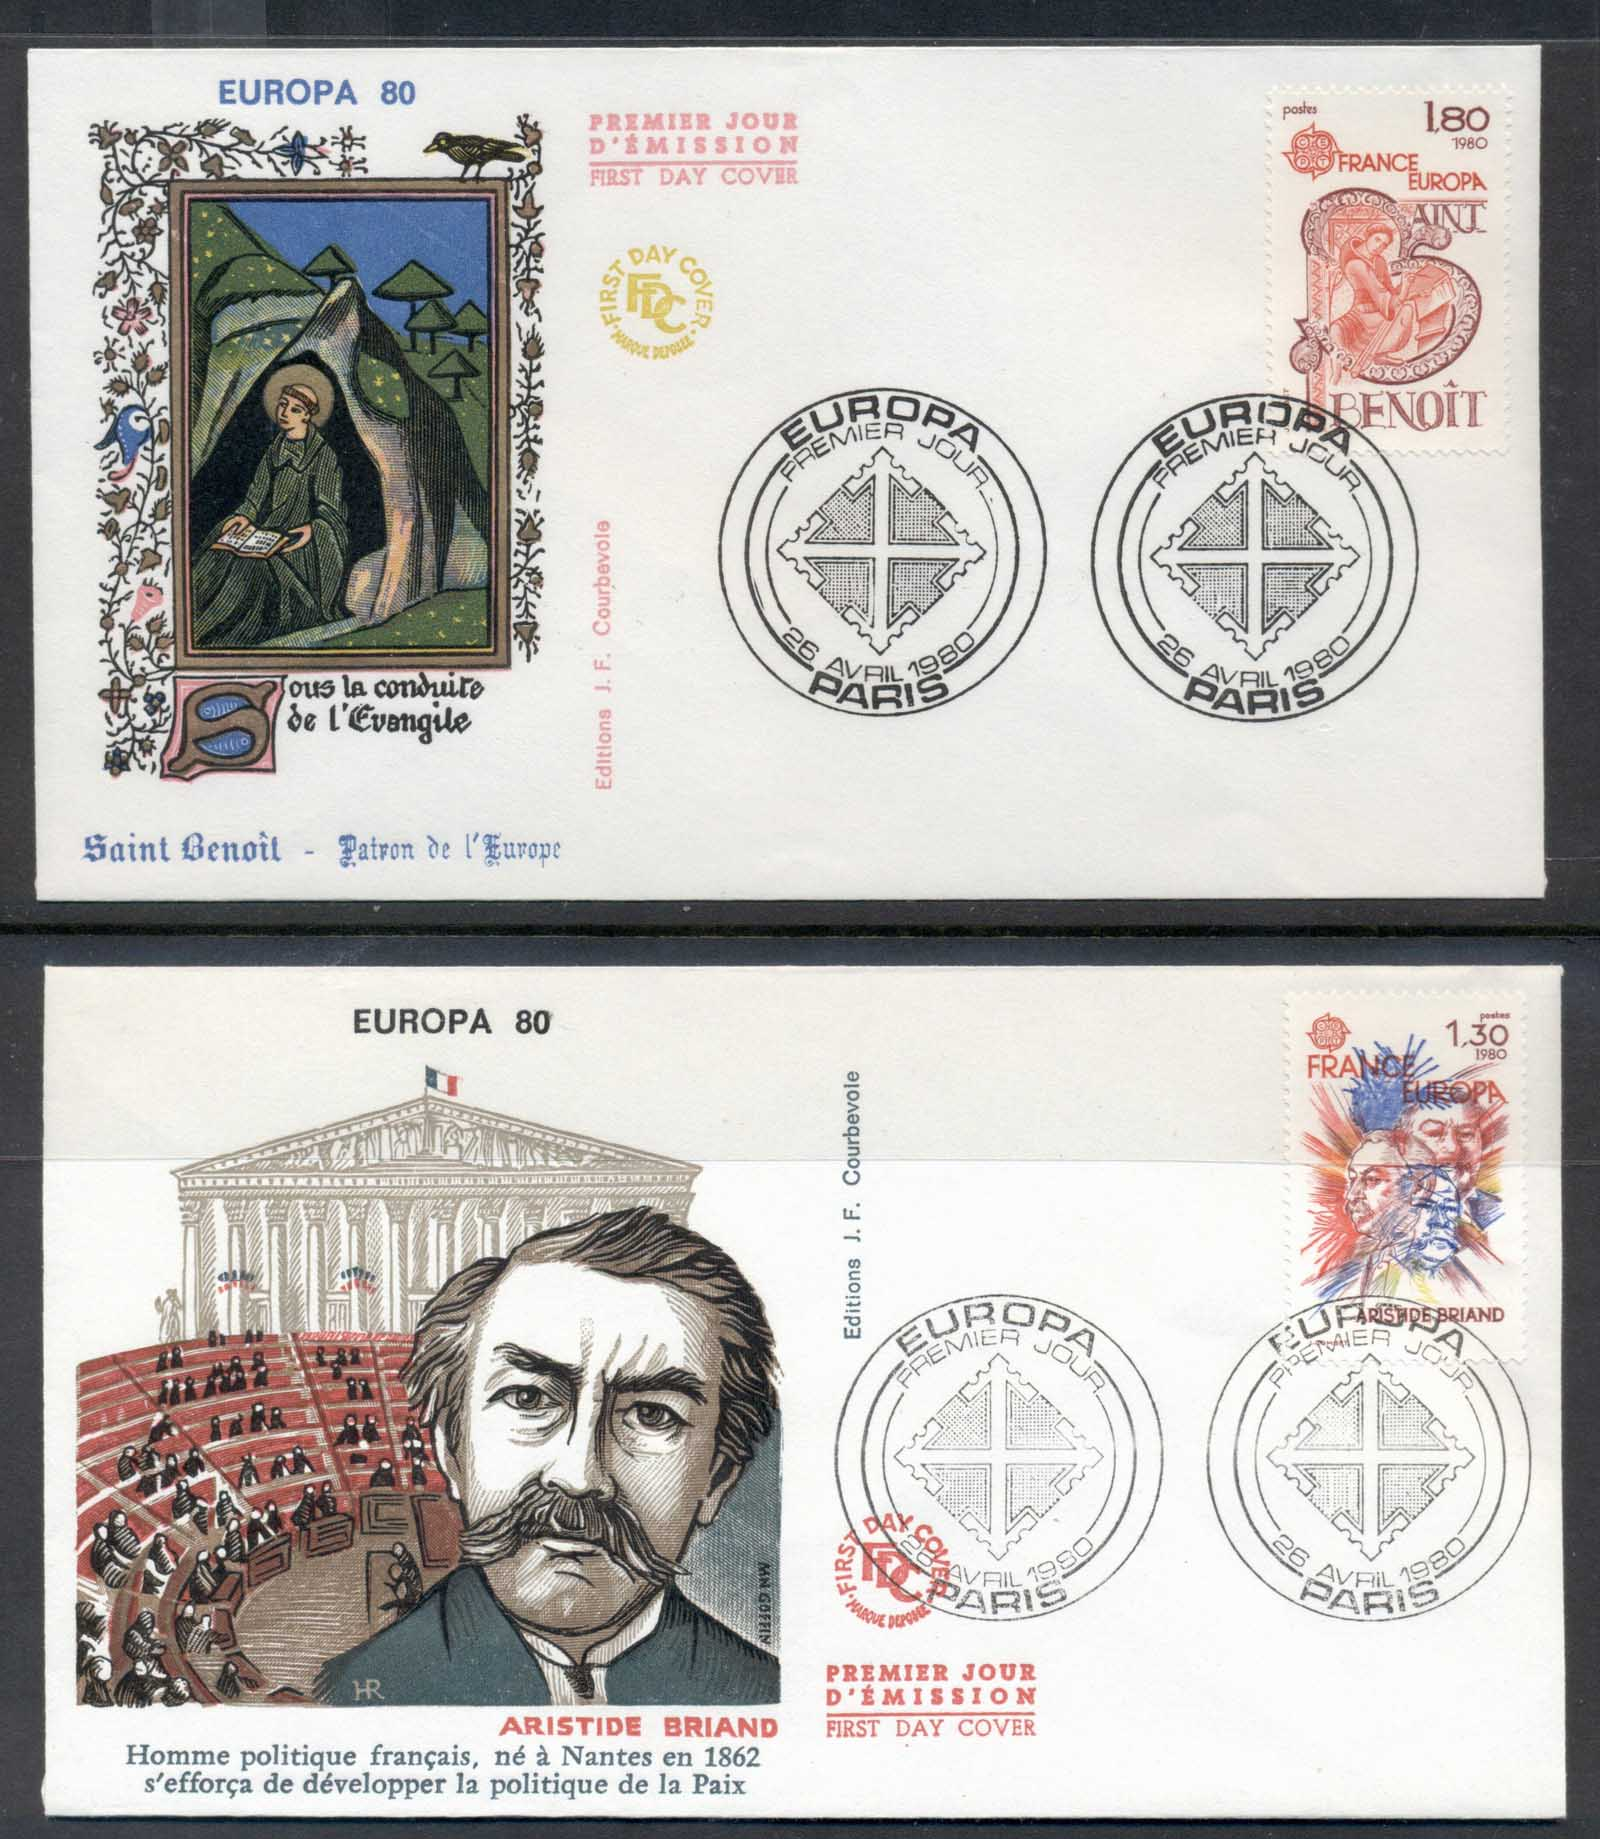 France 1980 Europa Celebrities 2x FDC